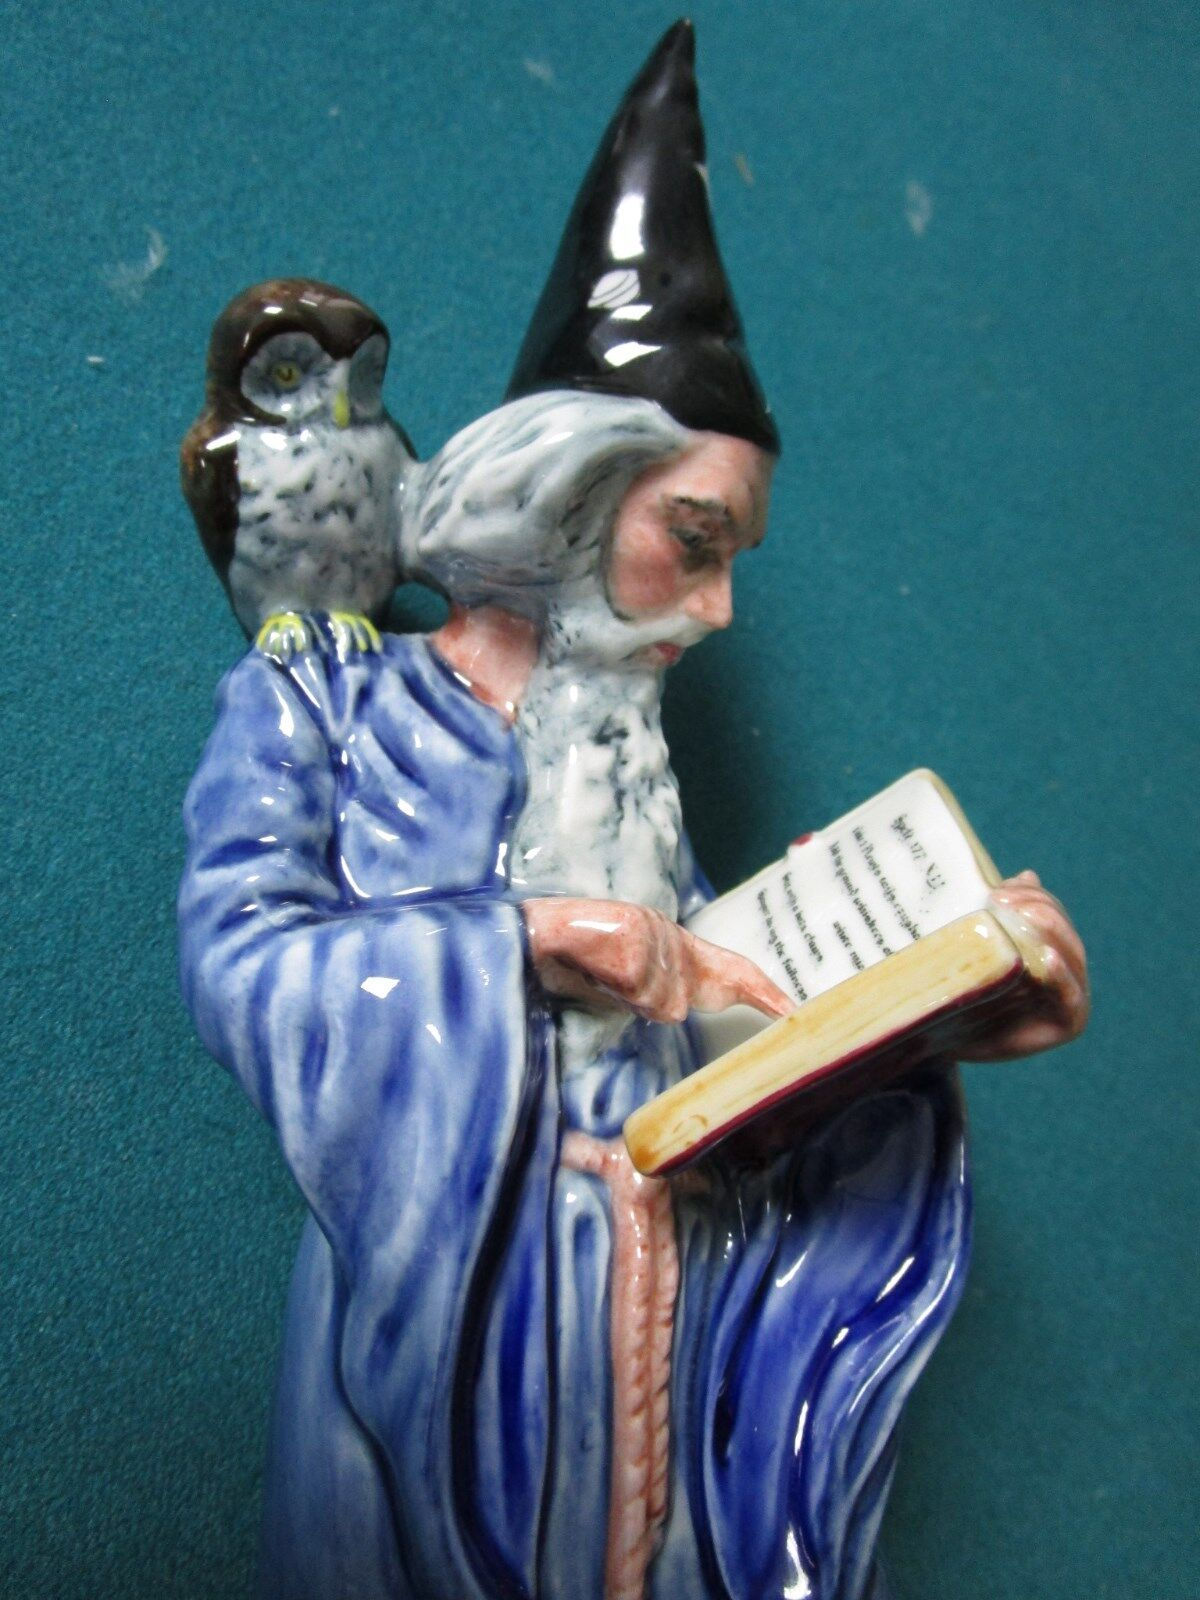 Royal Doulton The Wizard Hn 2877 Figurine A 3 Ebay